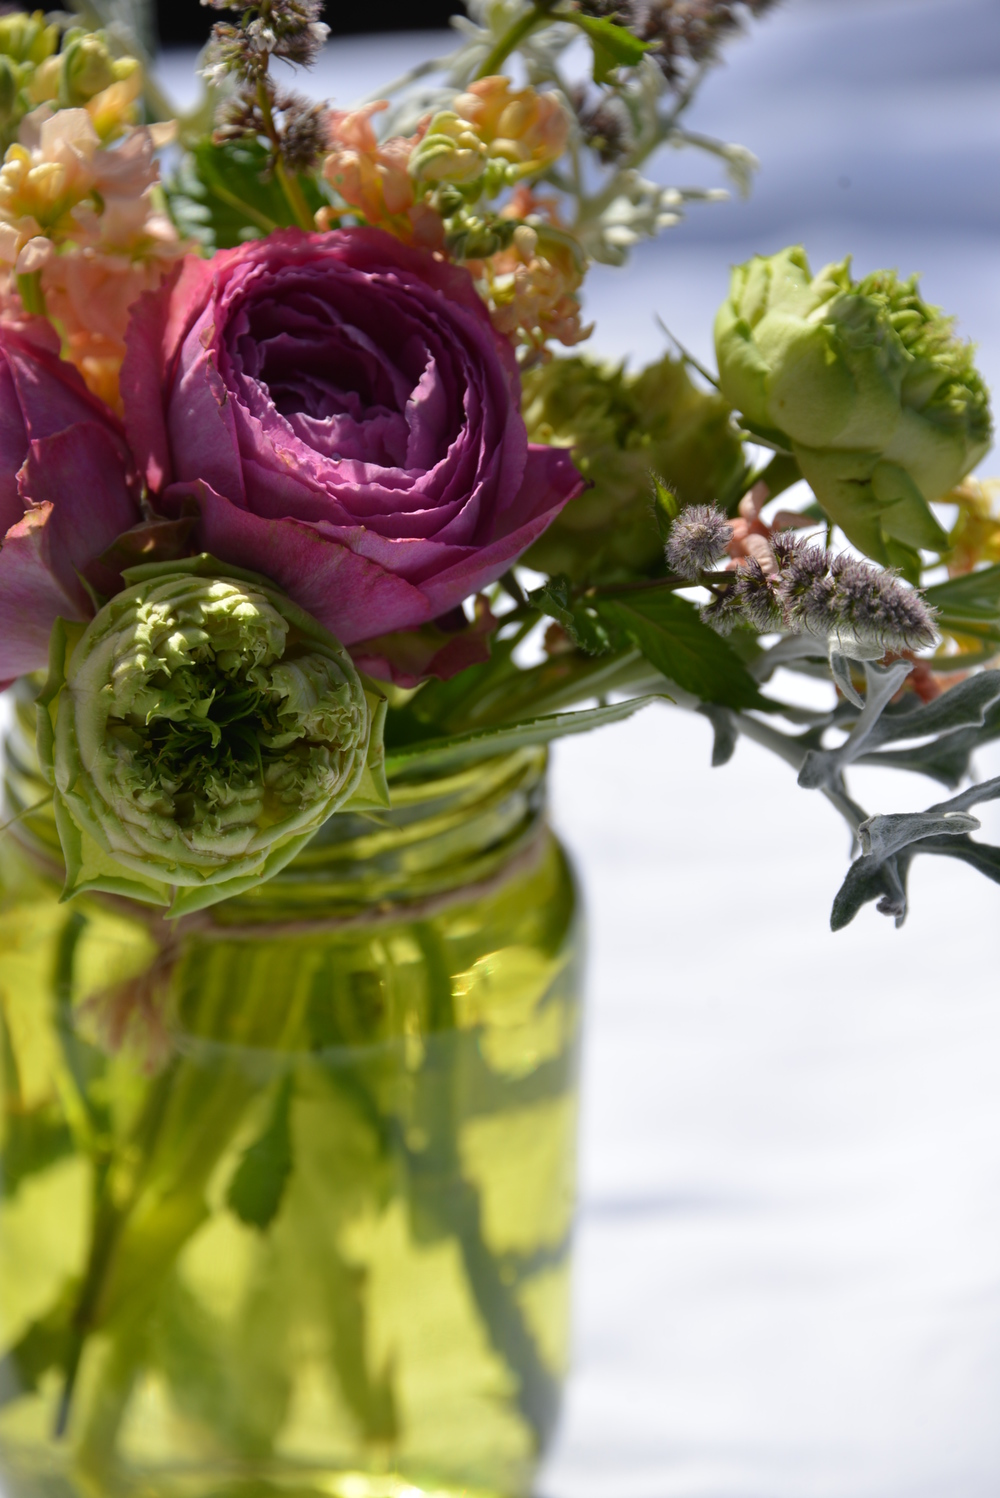 Micro flowers are a top trend from New York where smaller is so much cooler.